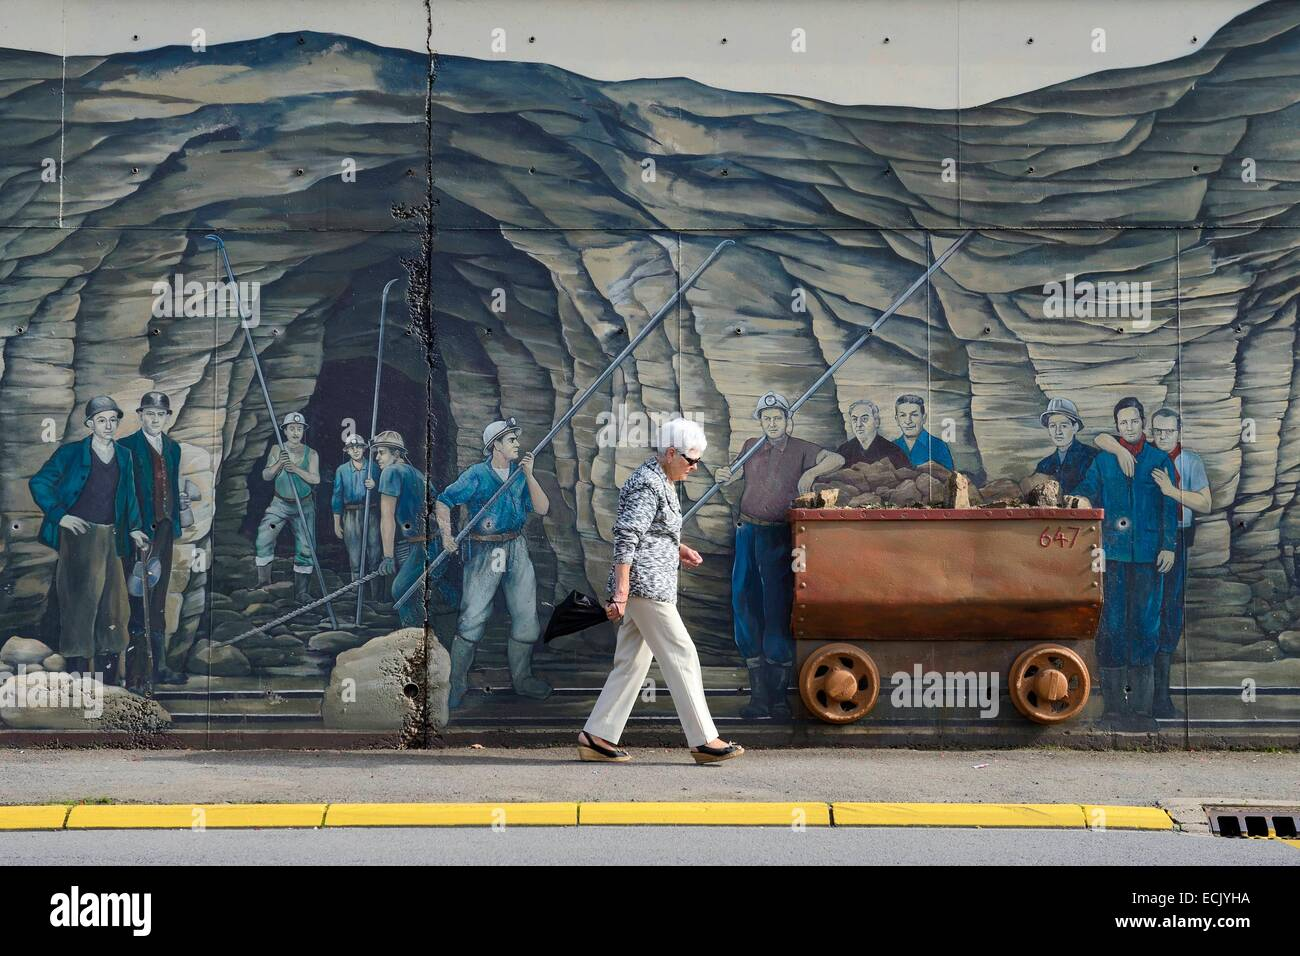 France, Moselle, Fensch Valley, Algrange, Four Mines mural dedicated to iron miners by artist Greg Gawra - Stock Image